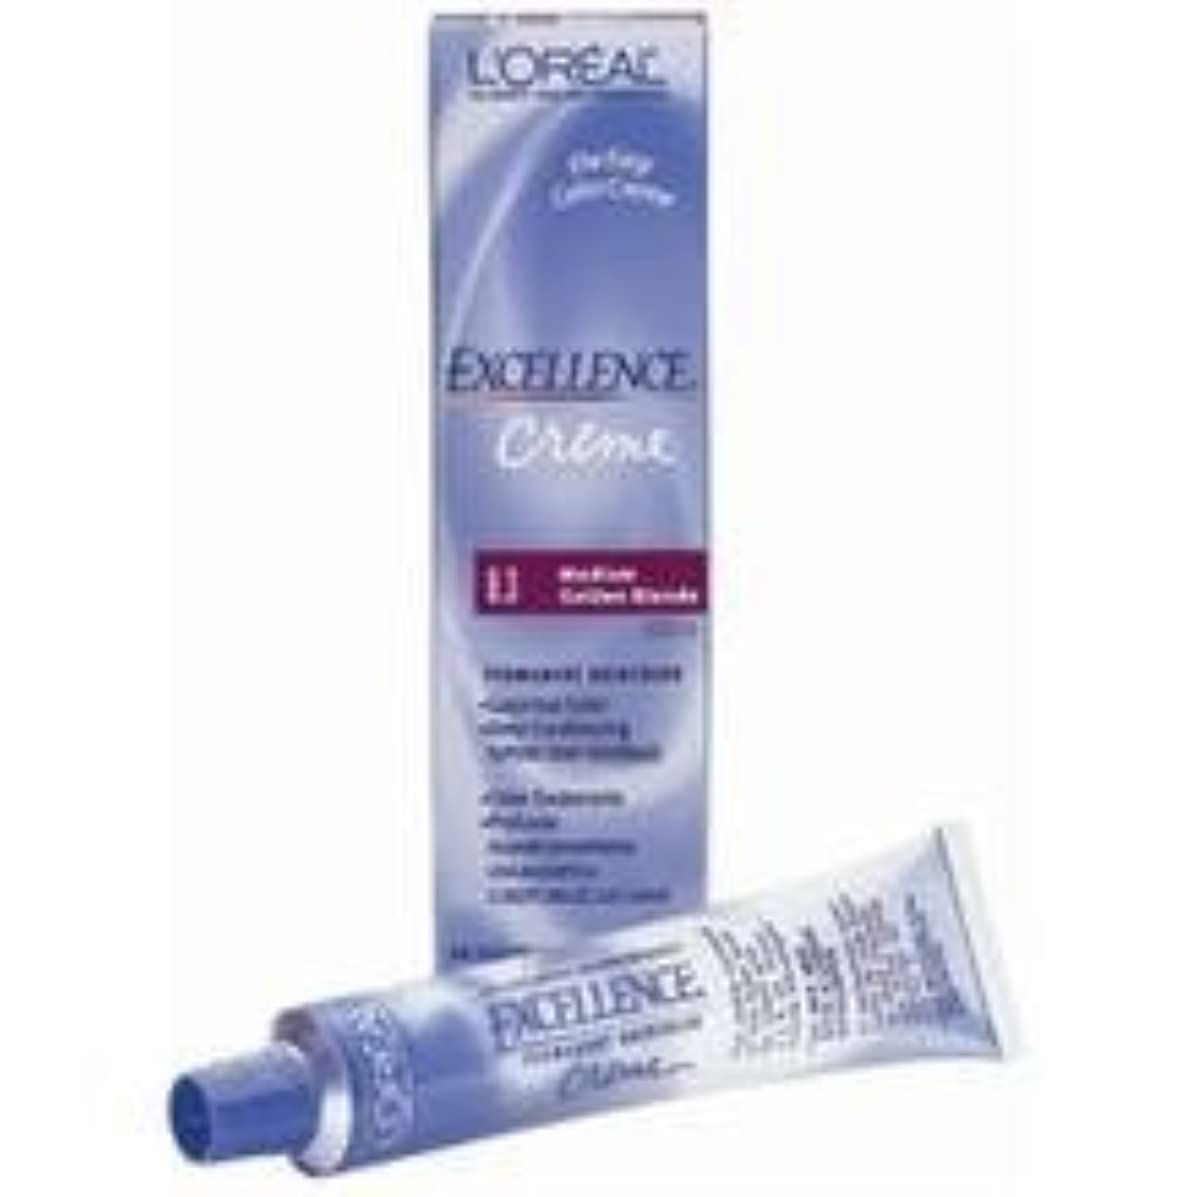 L'oreal Excellence Creme Permanent Hair Color, Medium Blonde No.8, 1.74 Ounce by L'Oreal